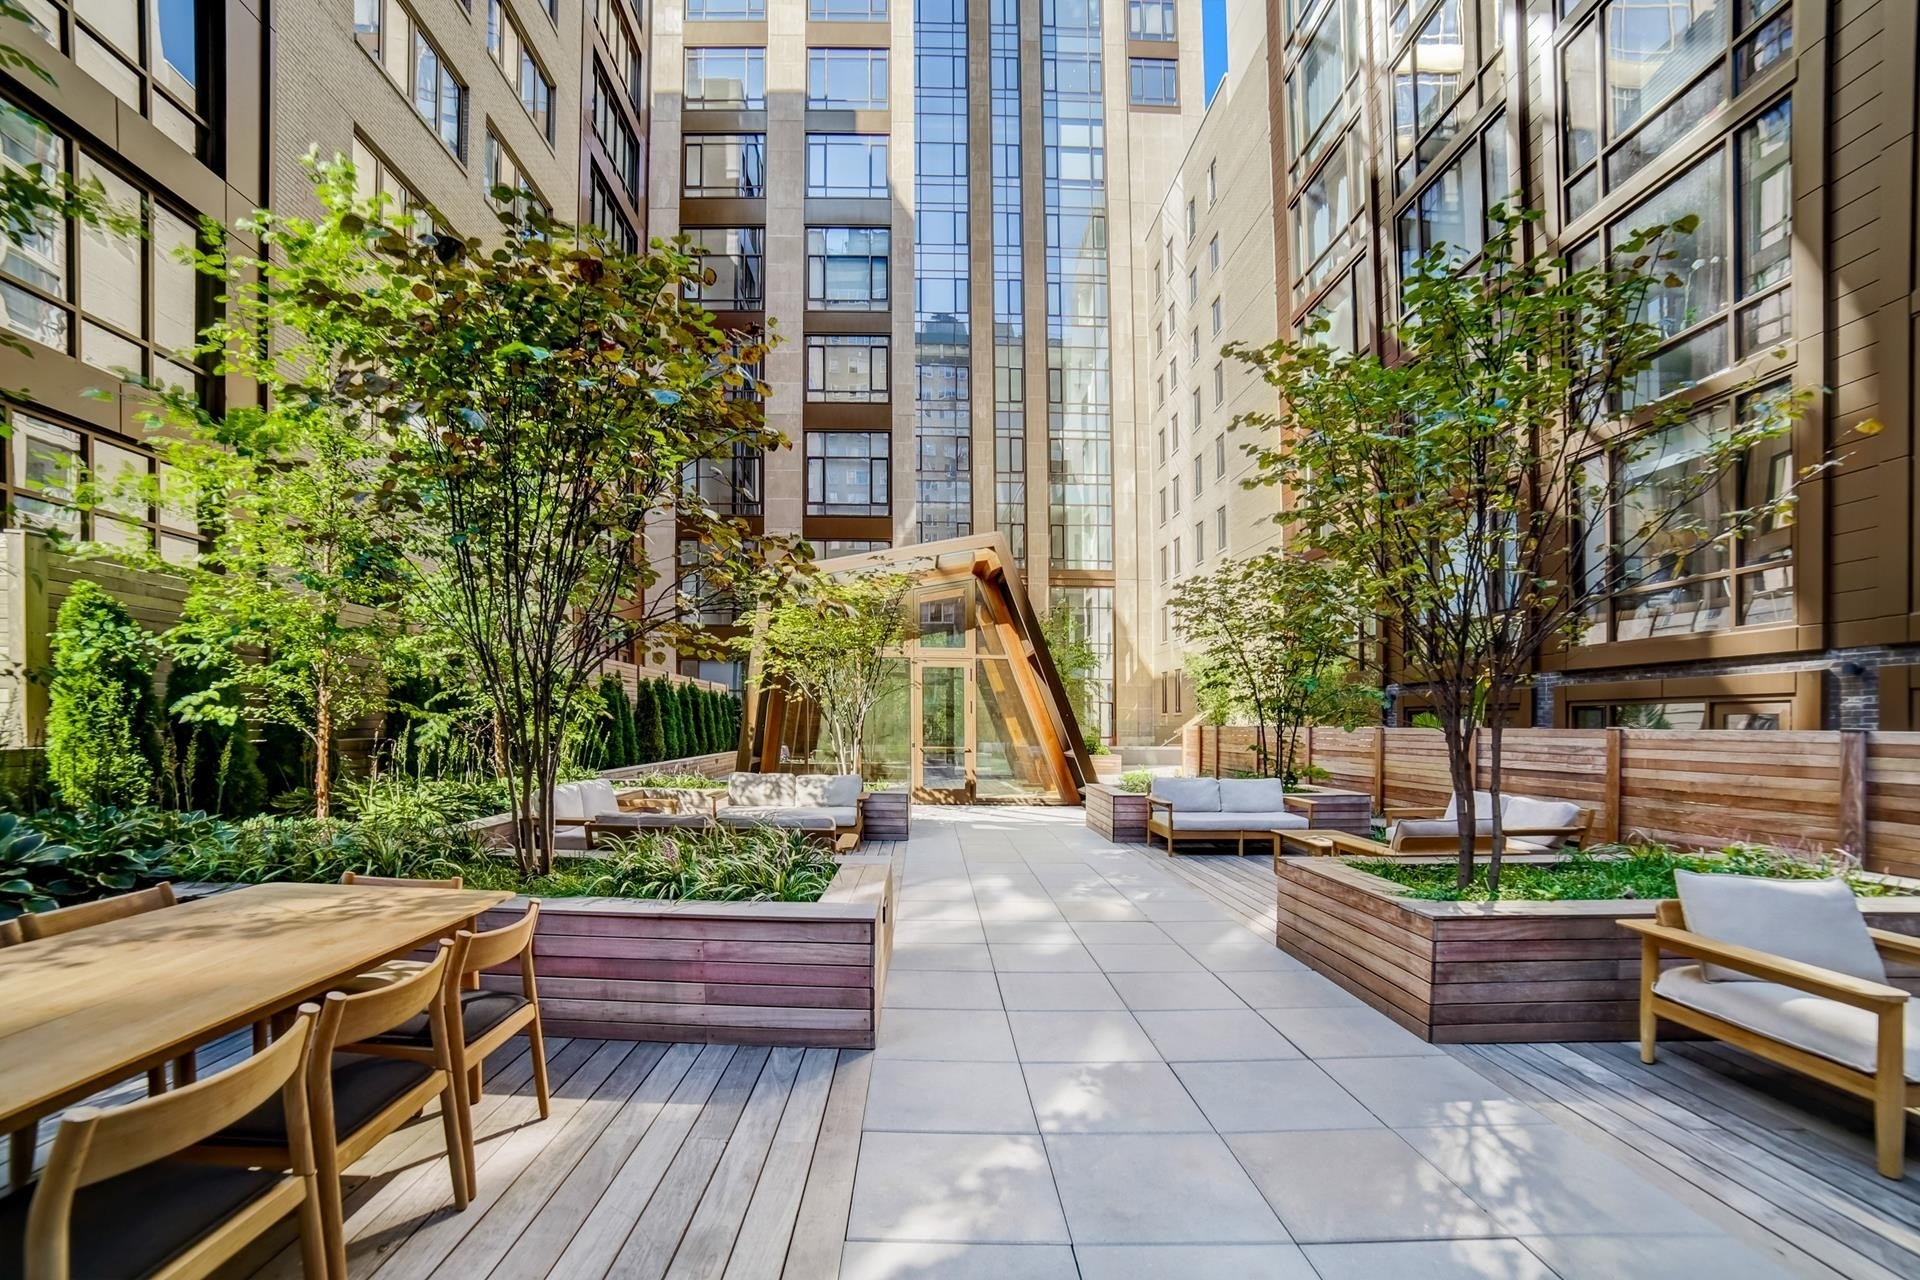 10. Condominiums for Sale at Gramercy Square, 215 East 19th St, 17A Gramercy Park, New York, NY 10003